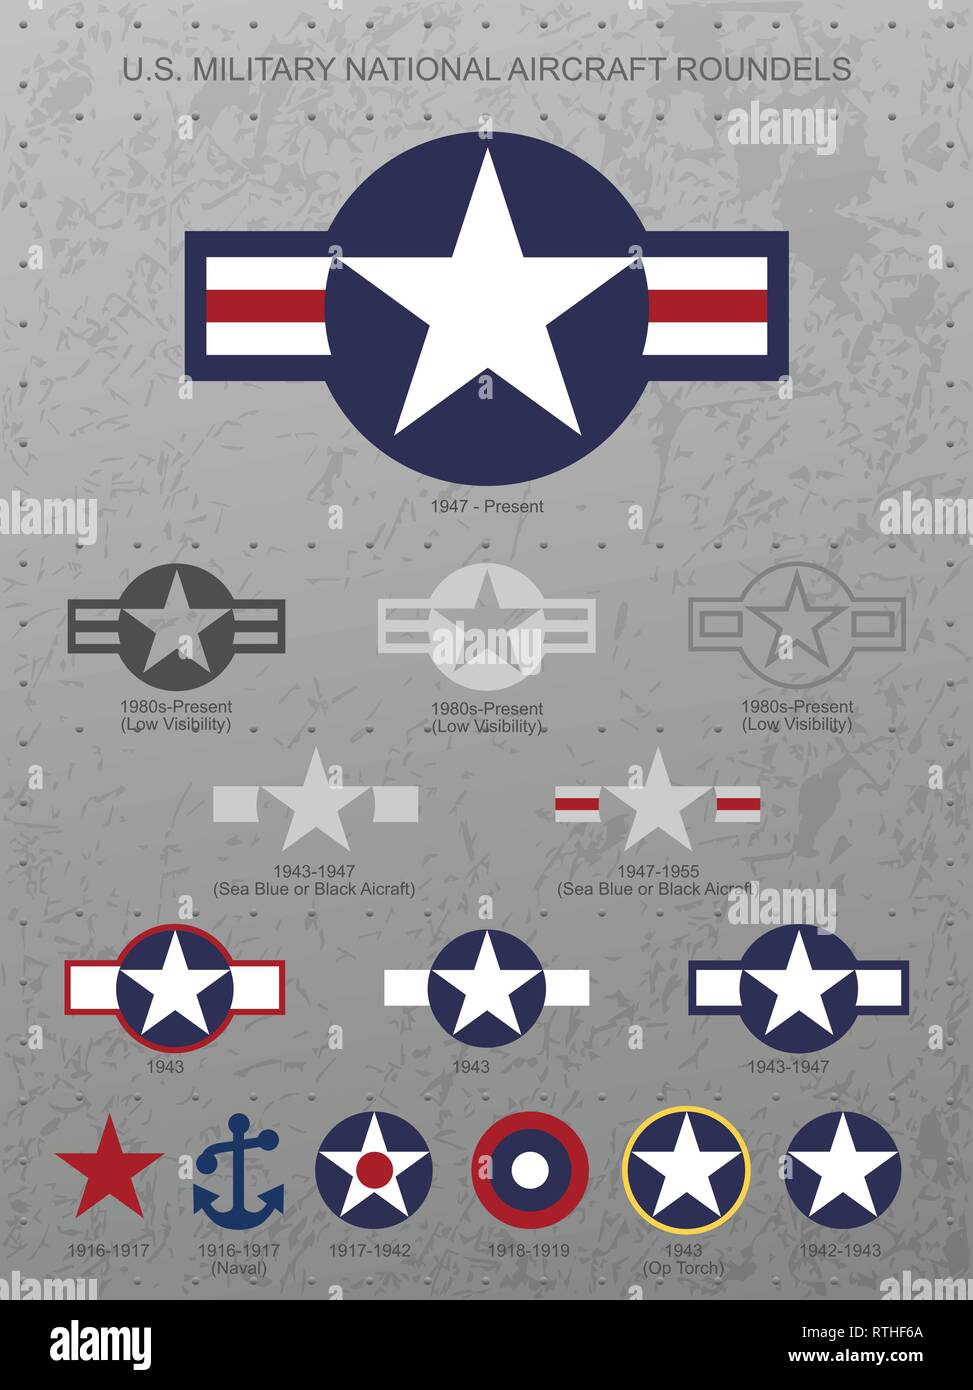 U.S. Military National Aircraft Star Roundels, distressed metal background with rivets, vector illustration - Stock Vector